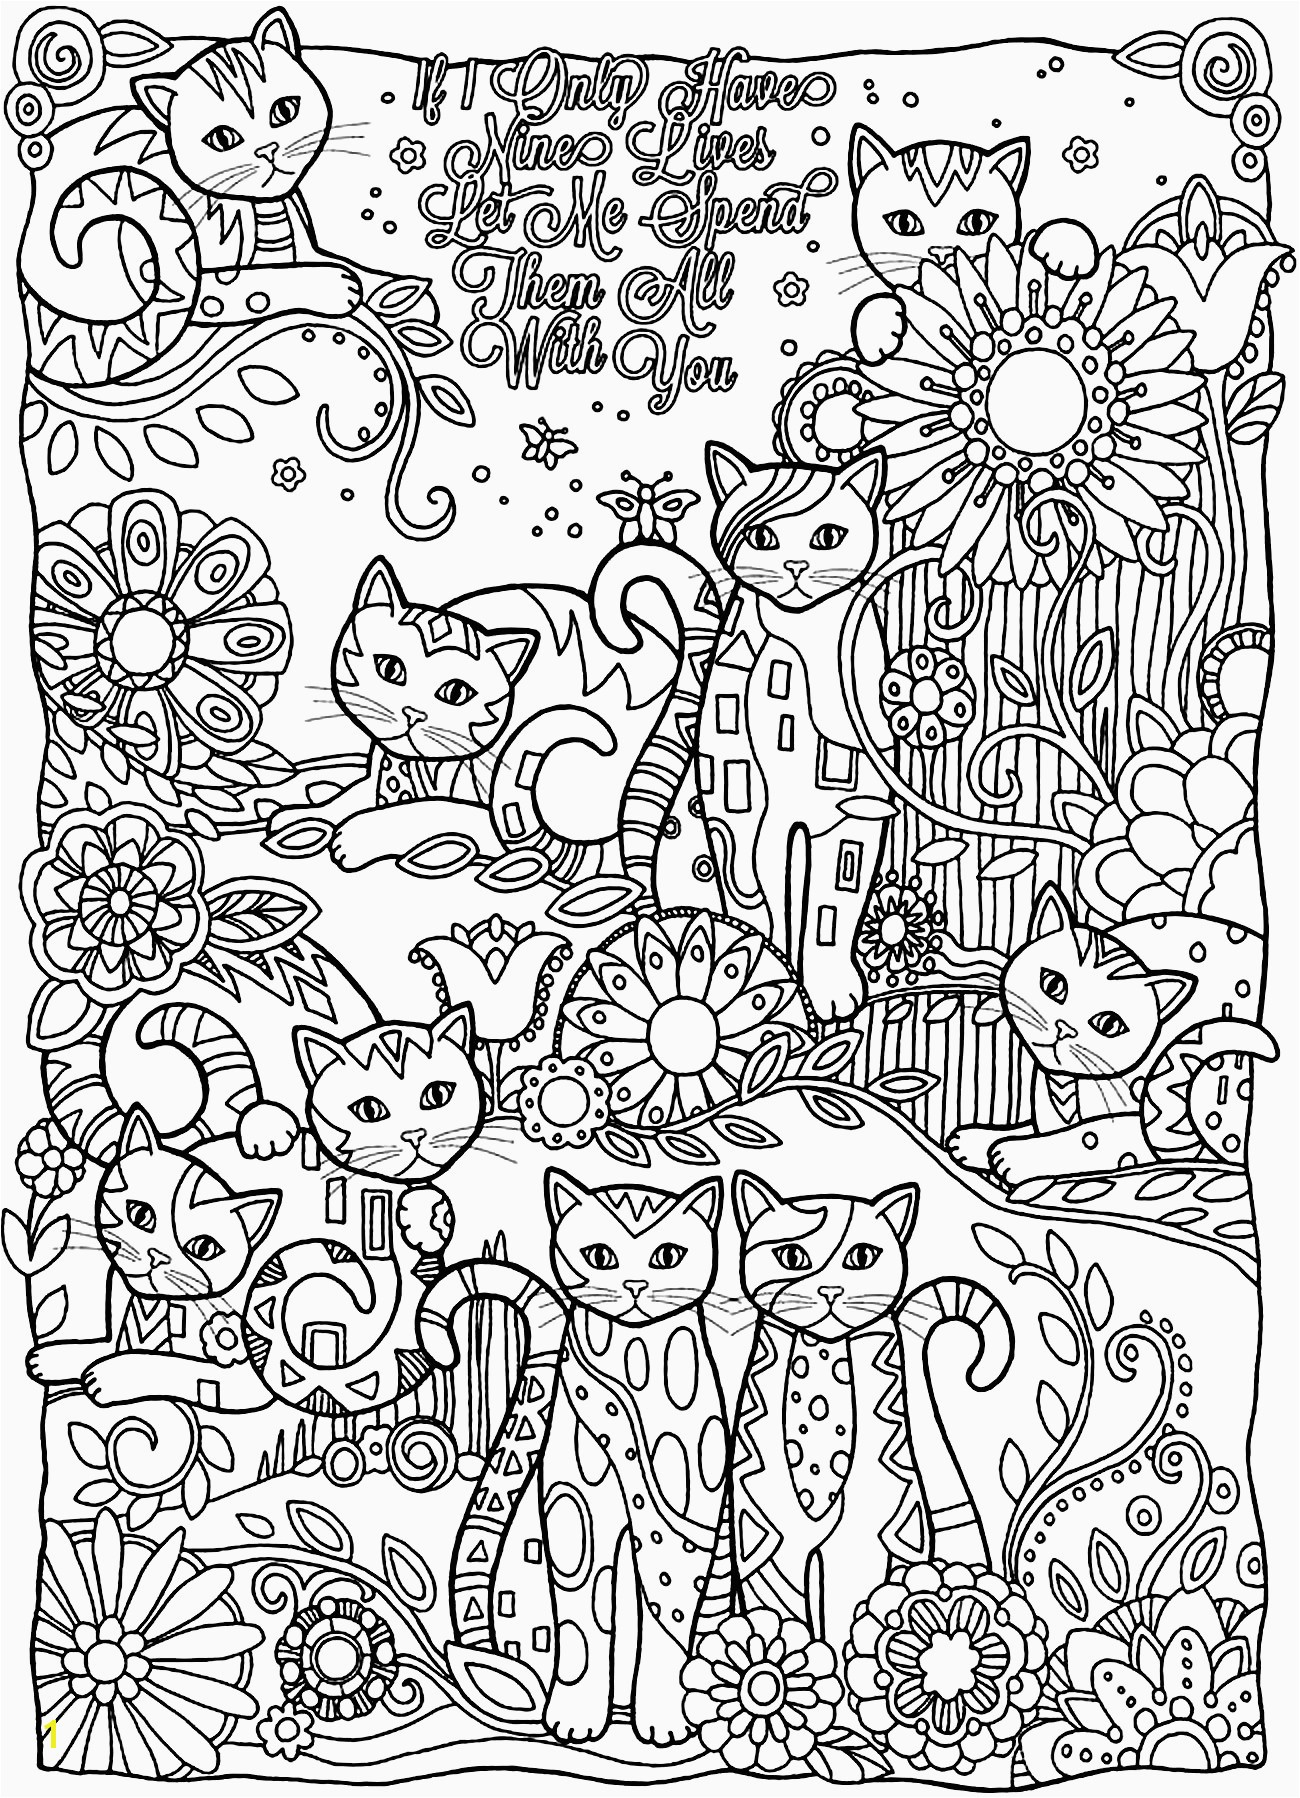 Finished Coloring Pages for Adults Fresh Cute Printable Coloring Pages New Printable Od Dog Coloring Pages